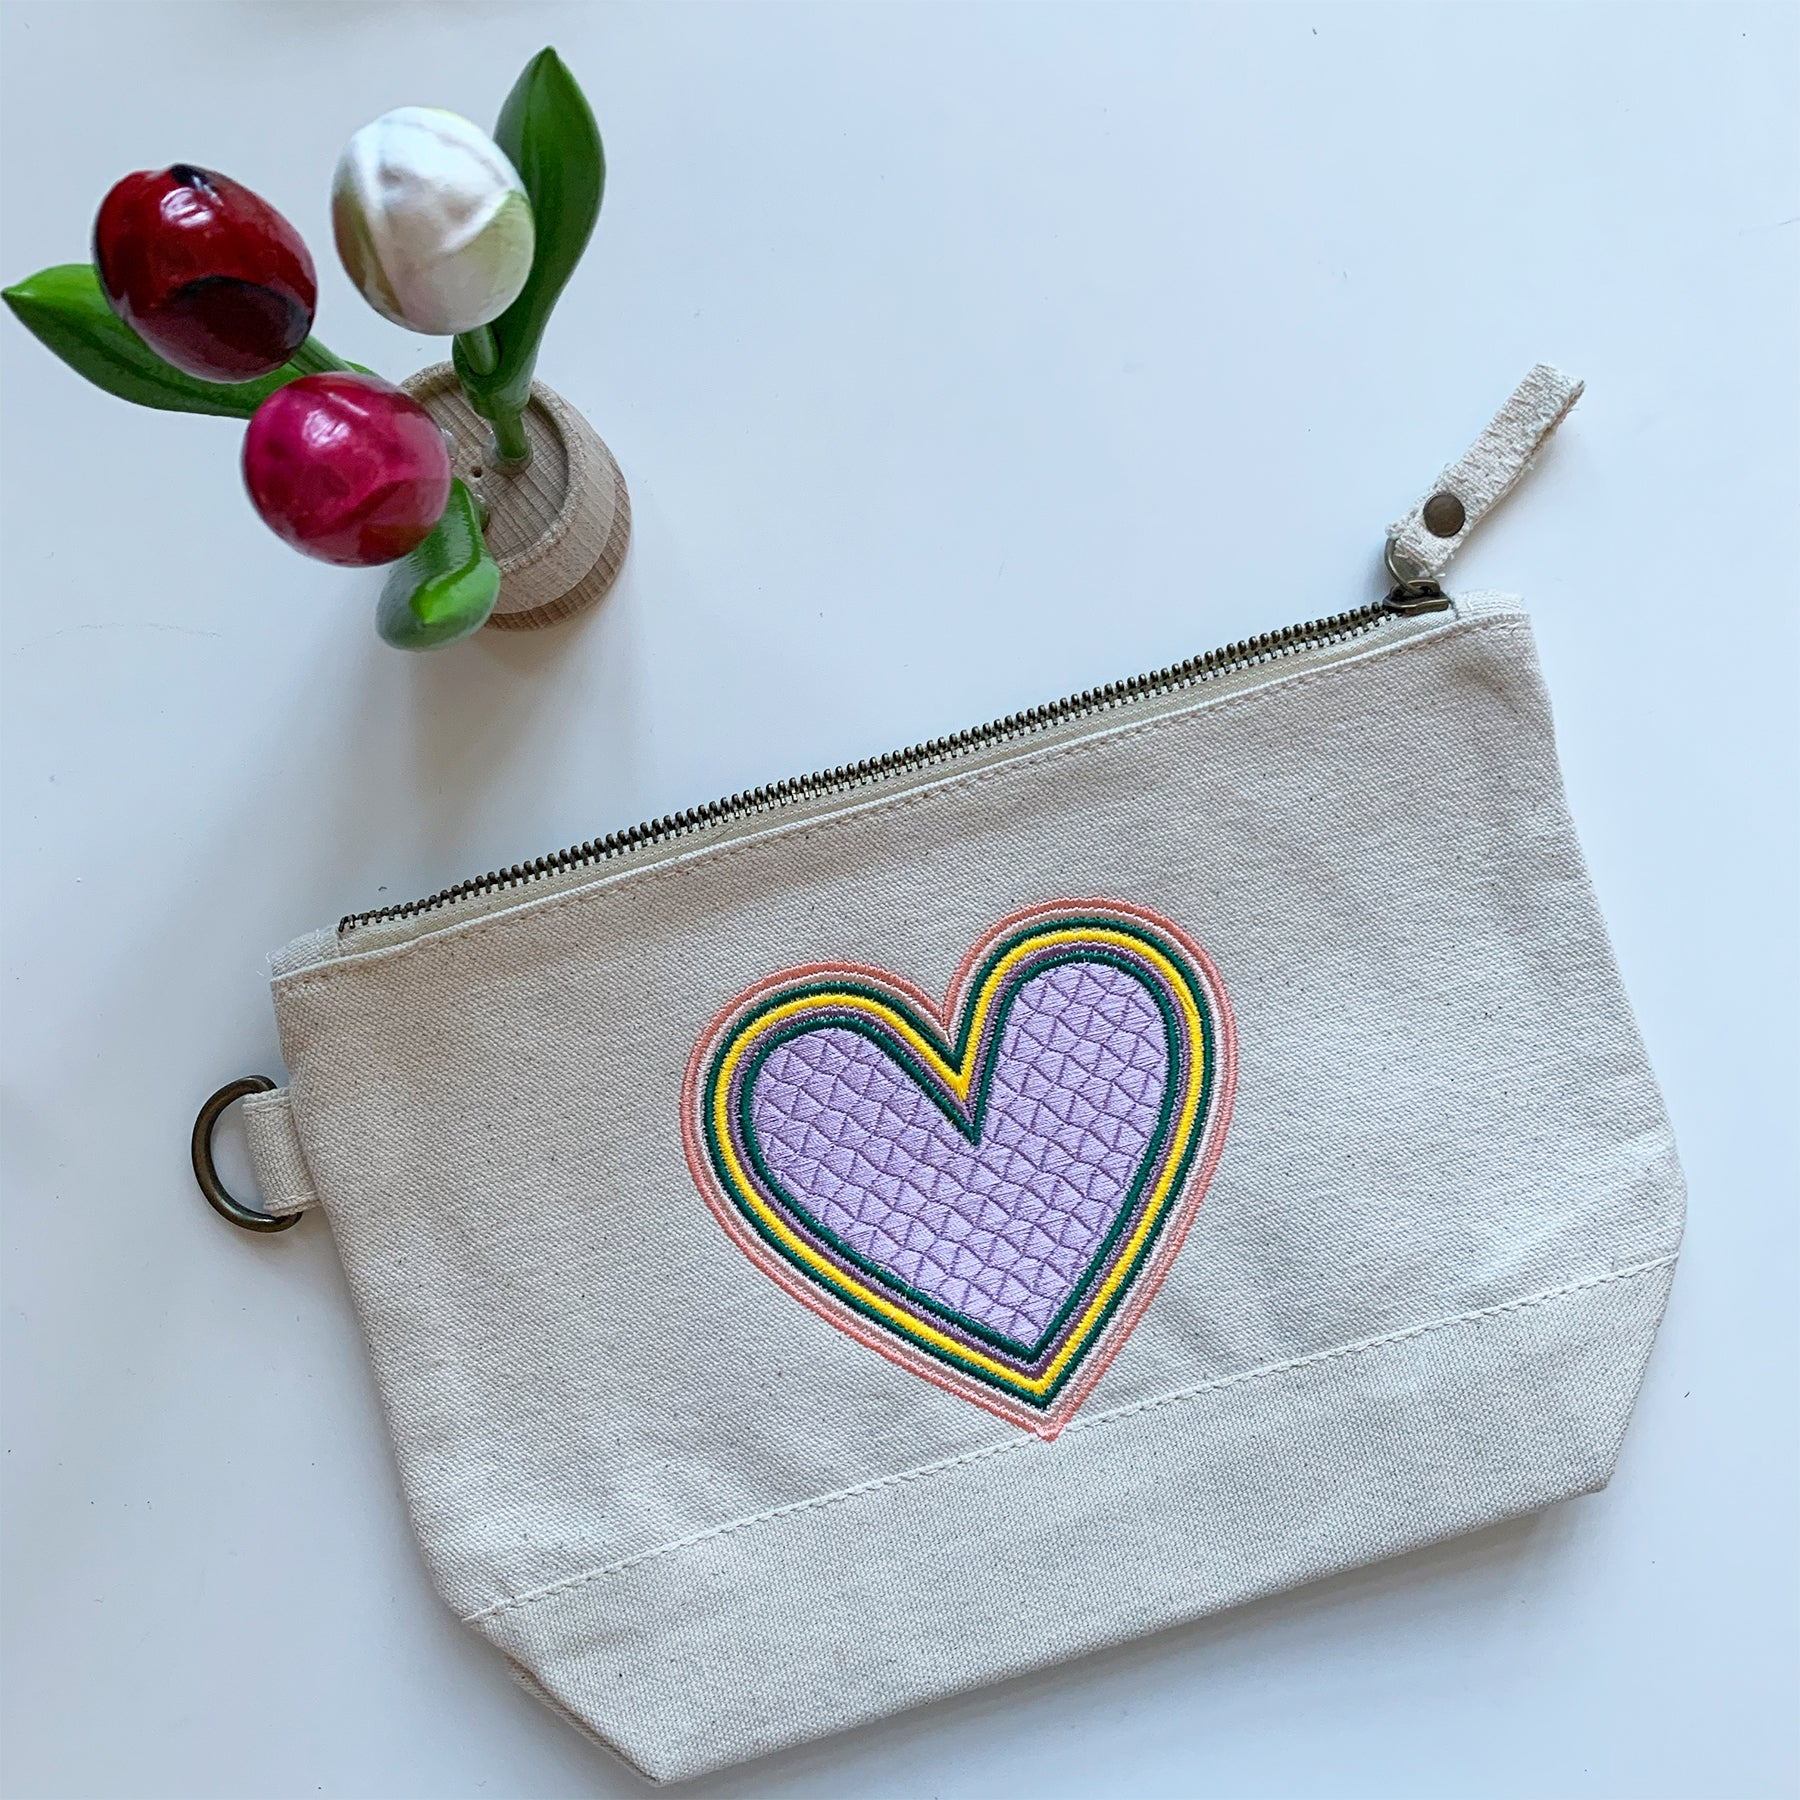 Embroidered Rainbow Heart Pouch on Cotton Canvas | Lavender Pouch